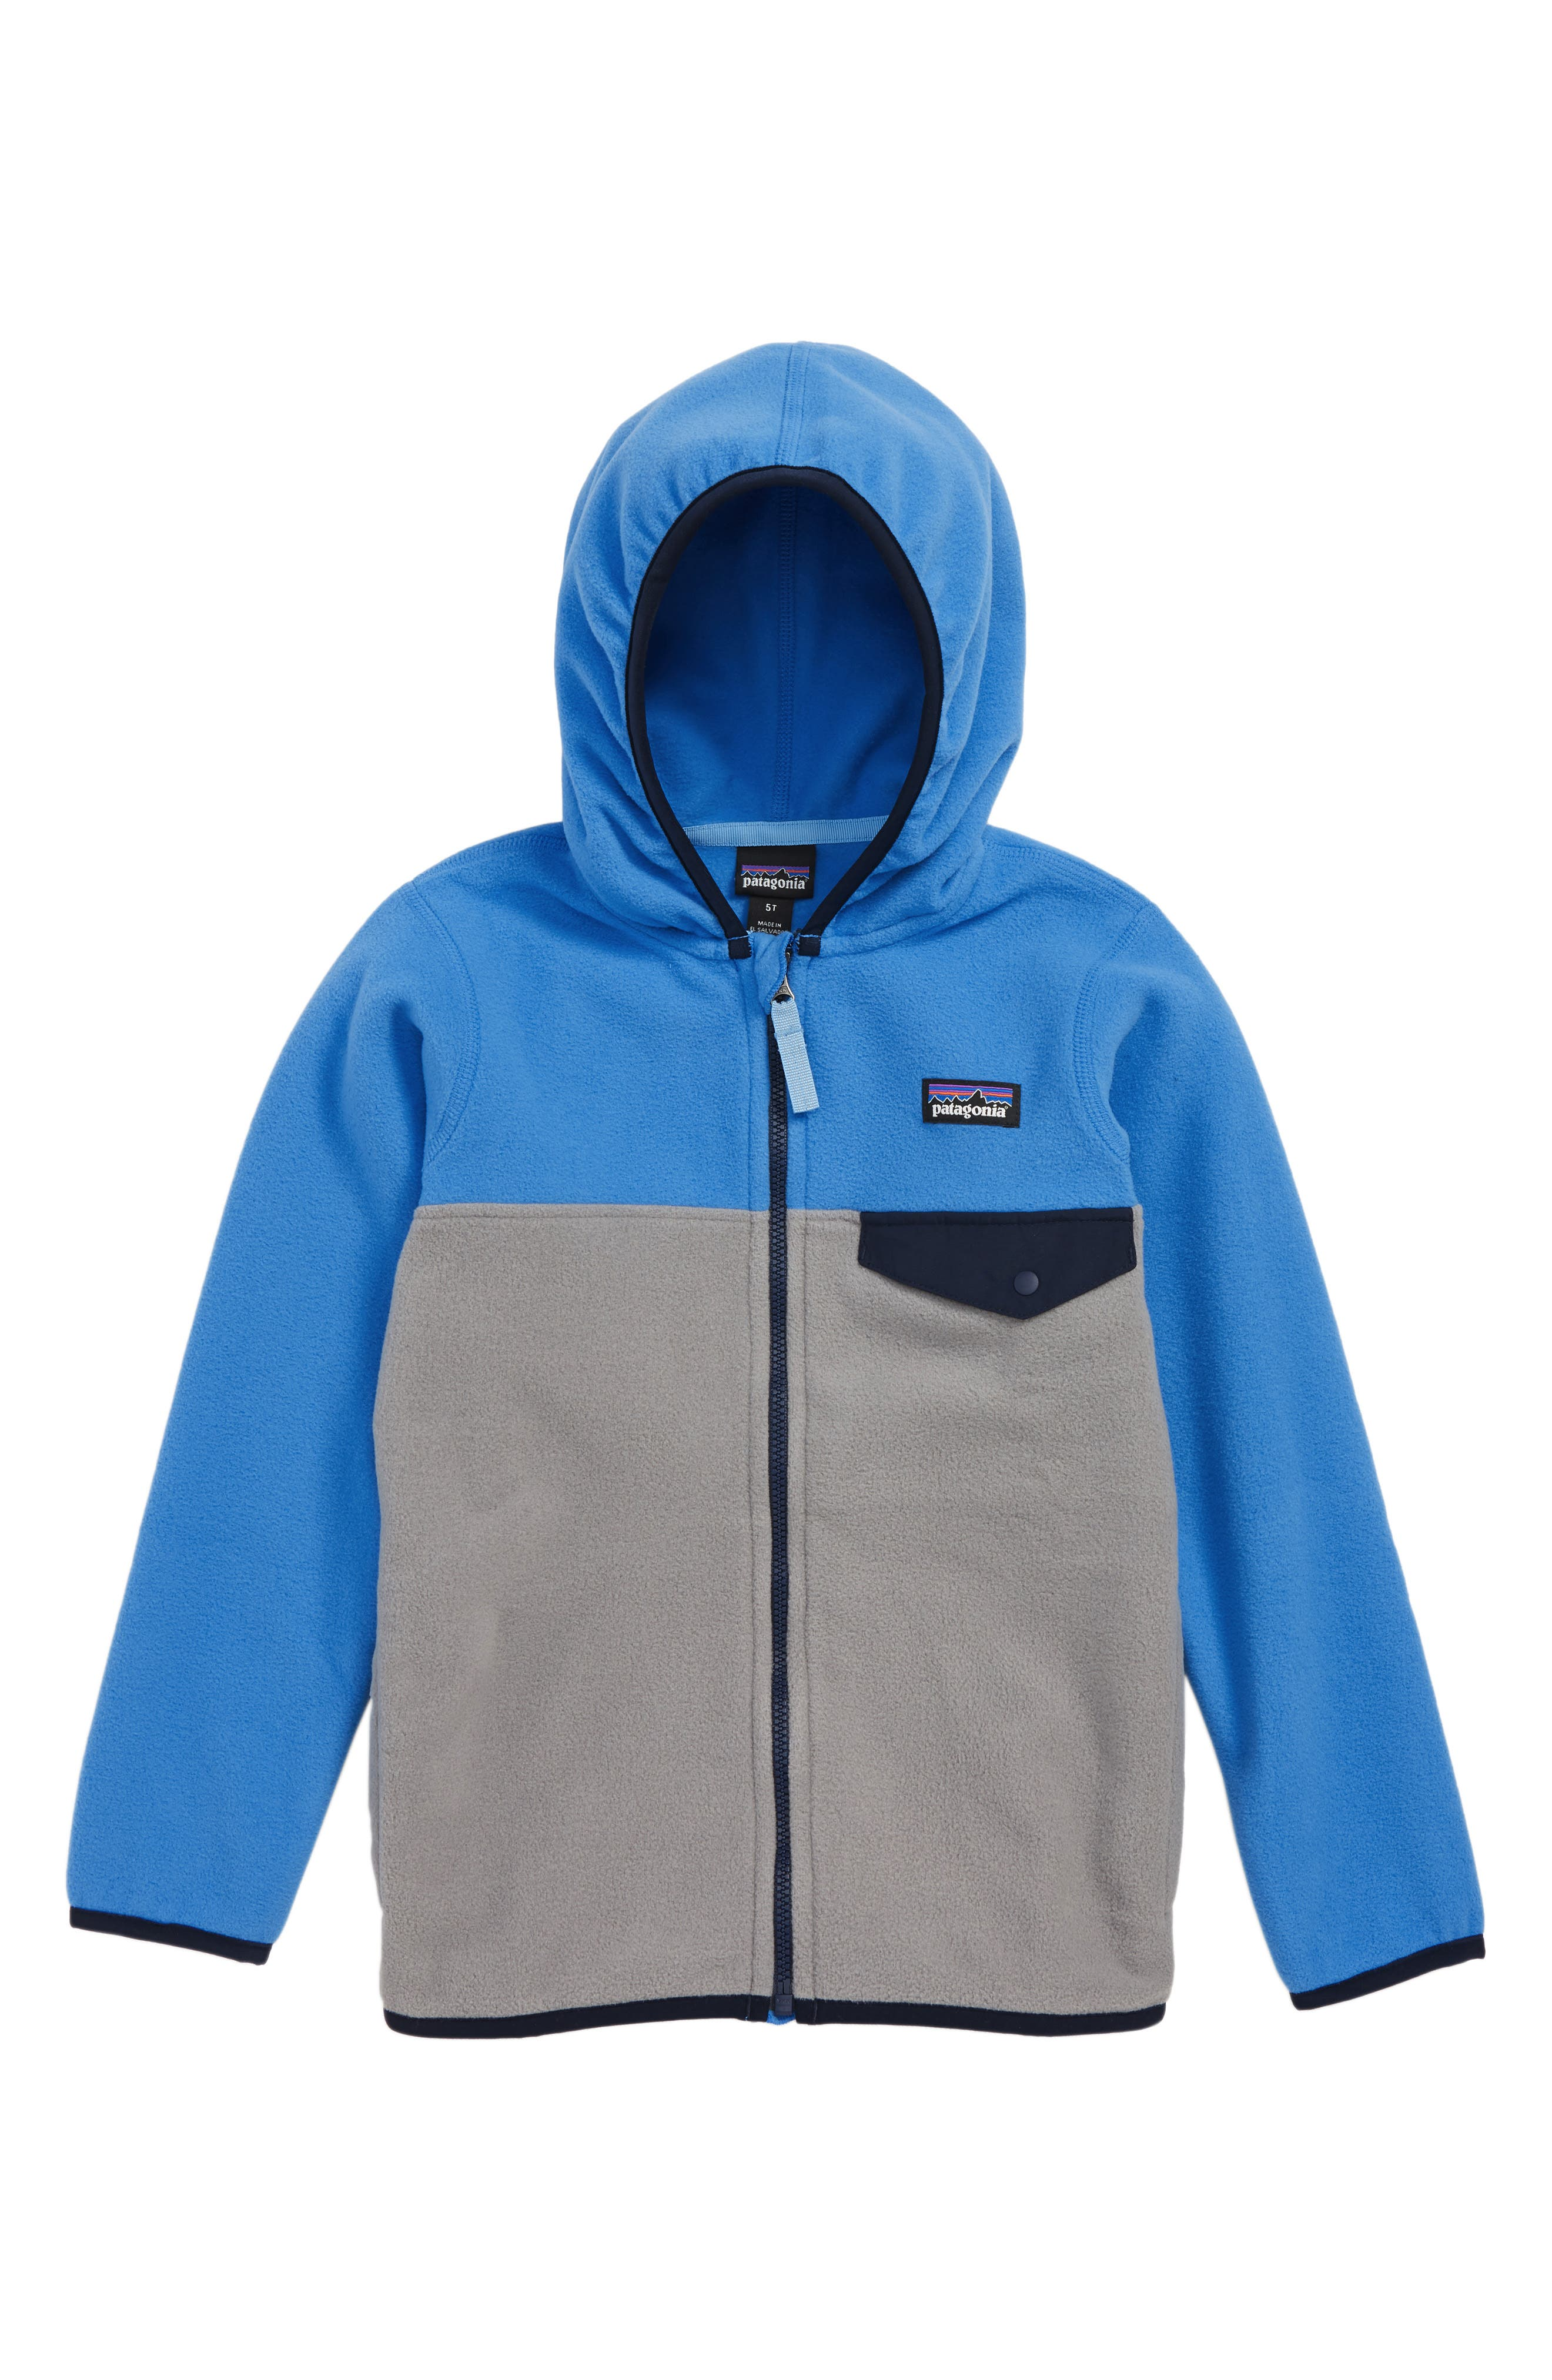 PATAGONIA Micro D<sup>®</sup> Snap-T<sup>®</sup> Fleece Jacket, Main, color, FEATHER GREY/ PORT BLUE